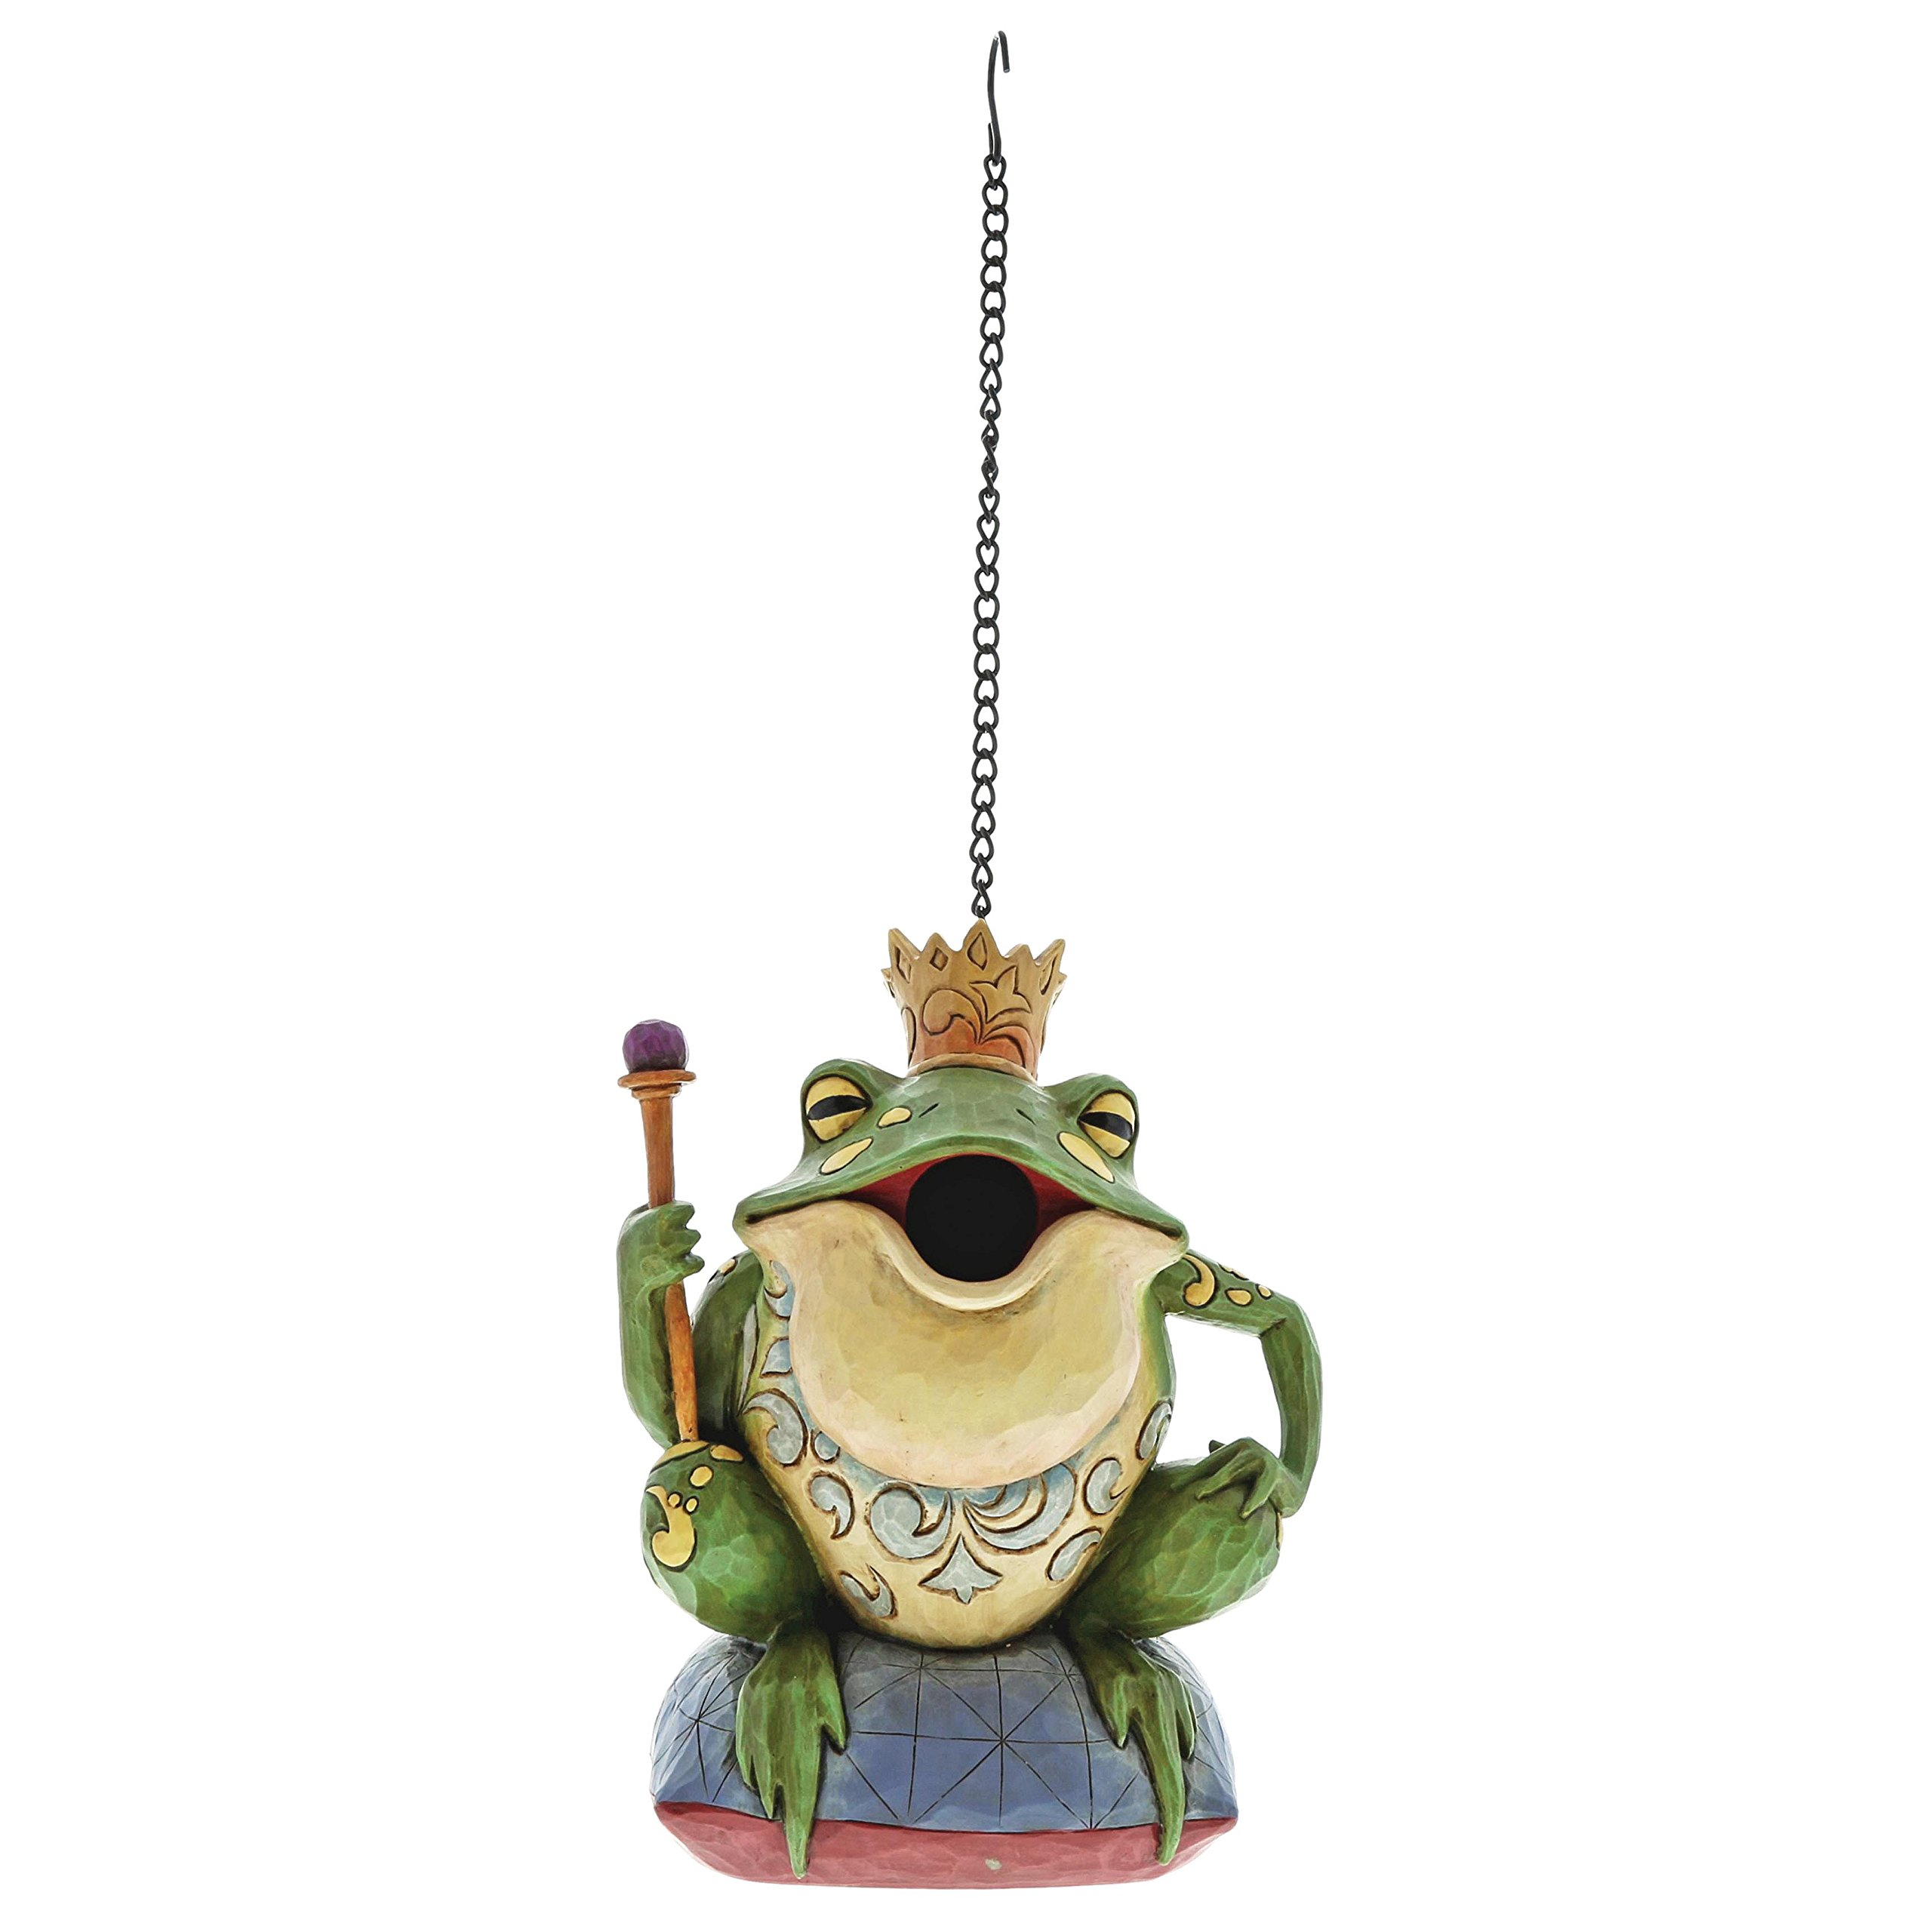 Enesco Frog Prince Birdhouse 8.75 Inches Height x 4.75 Inches Width x 6.5 Inches Length Stone Resin Collectible Figurines